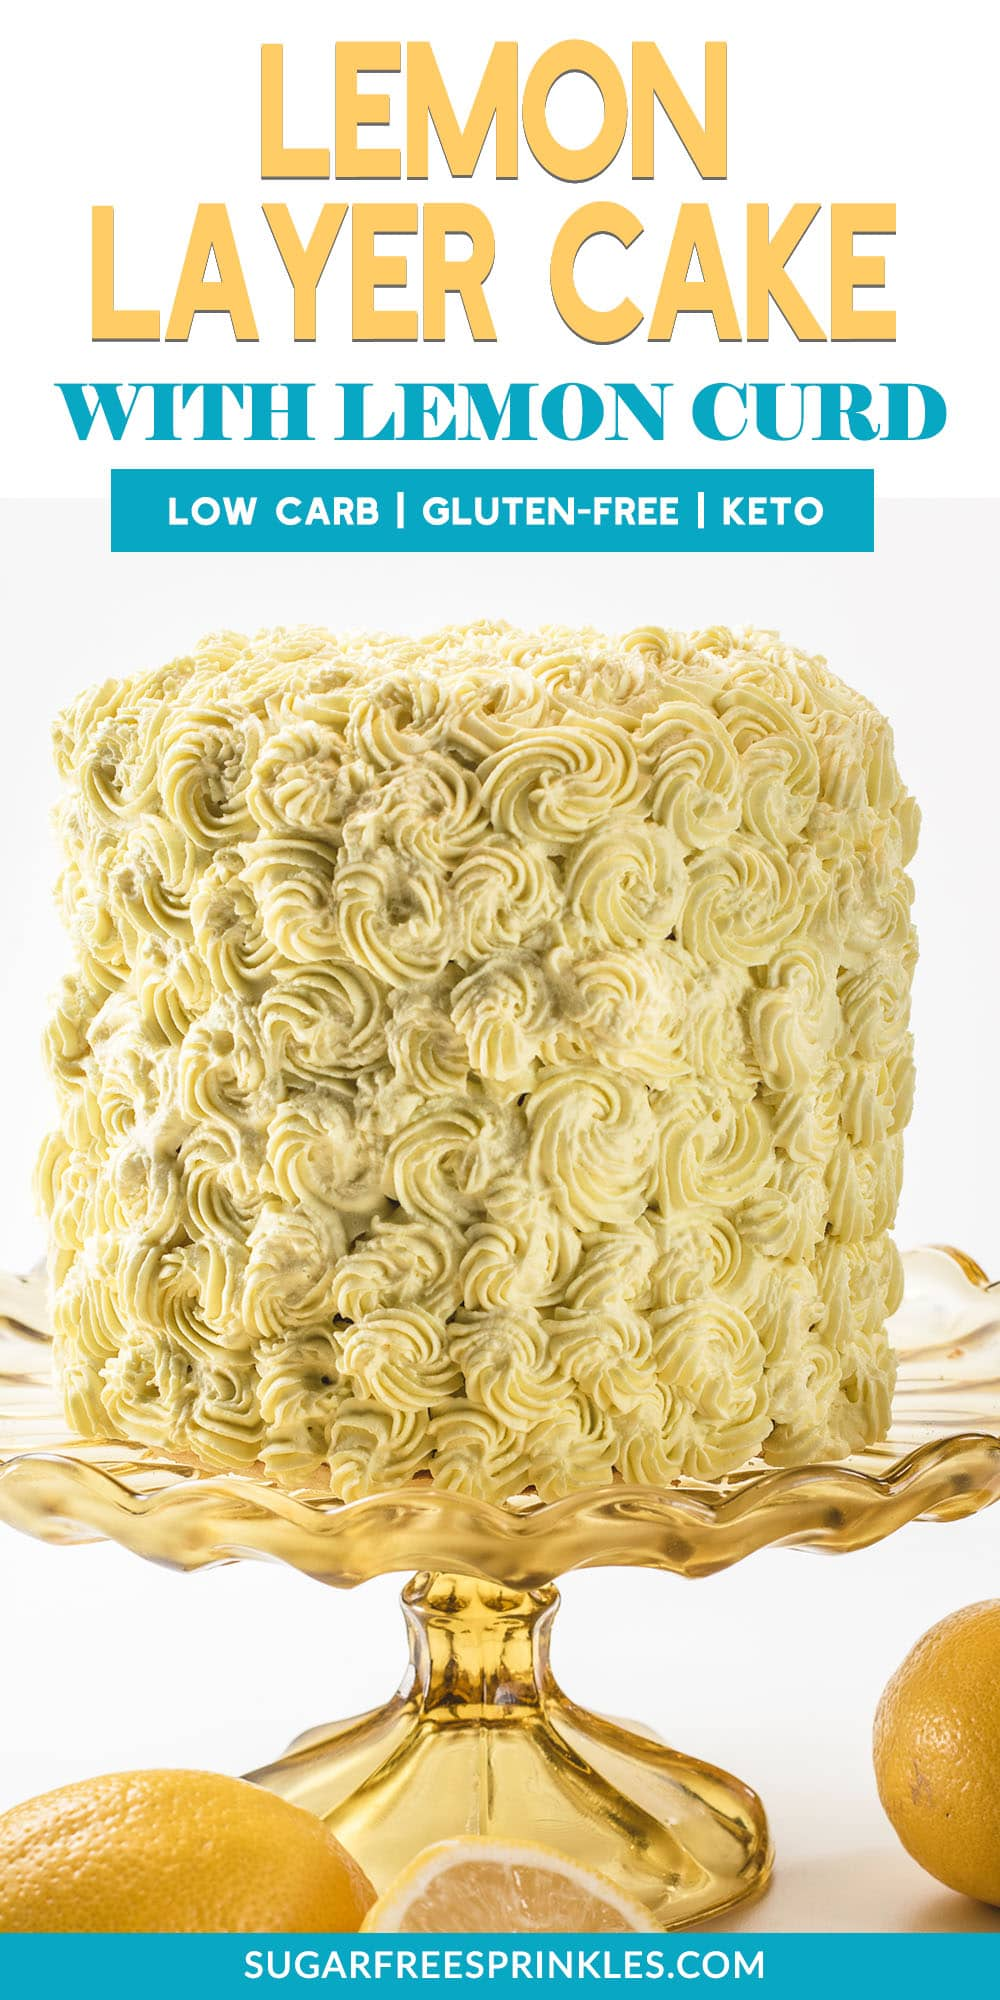 Fresh homemade lemon curd is the star in this keto lemon cake. It\'s tart, and sweet, and does not grain up when refrigerated. You will want to make an extra batch of the lemon curd just to have on hand, it\'s SO good. This keto lemon cake is luscious and creamy and is layered with stacks of whipped cream and fresh lemon curd. This low carb lemon cake serves 14 and is great for a crowd or holiday meal. #ketocakes #ketolemoncake #ketodessters